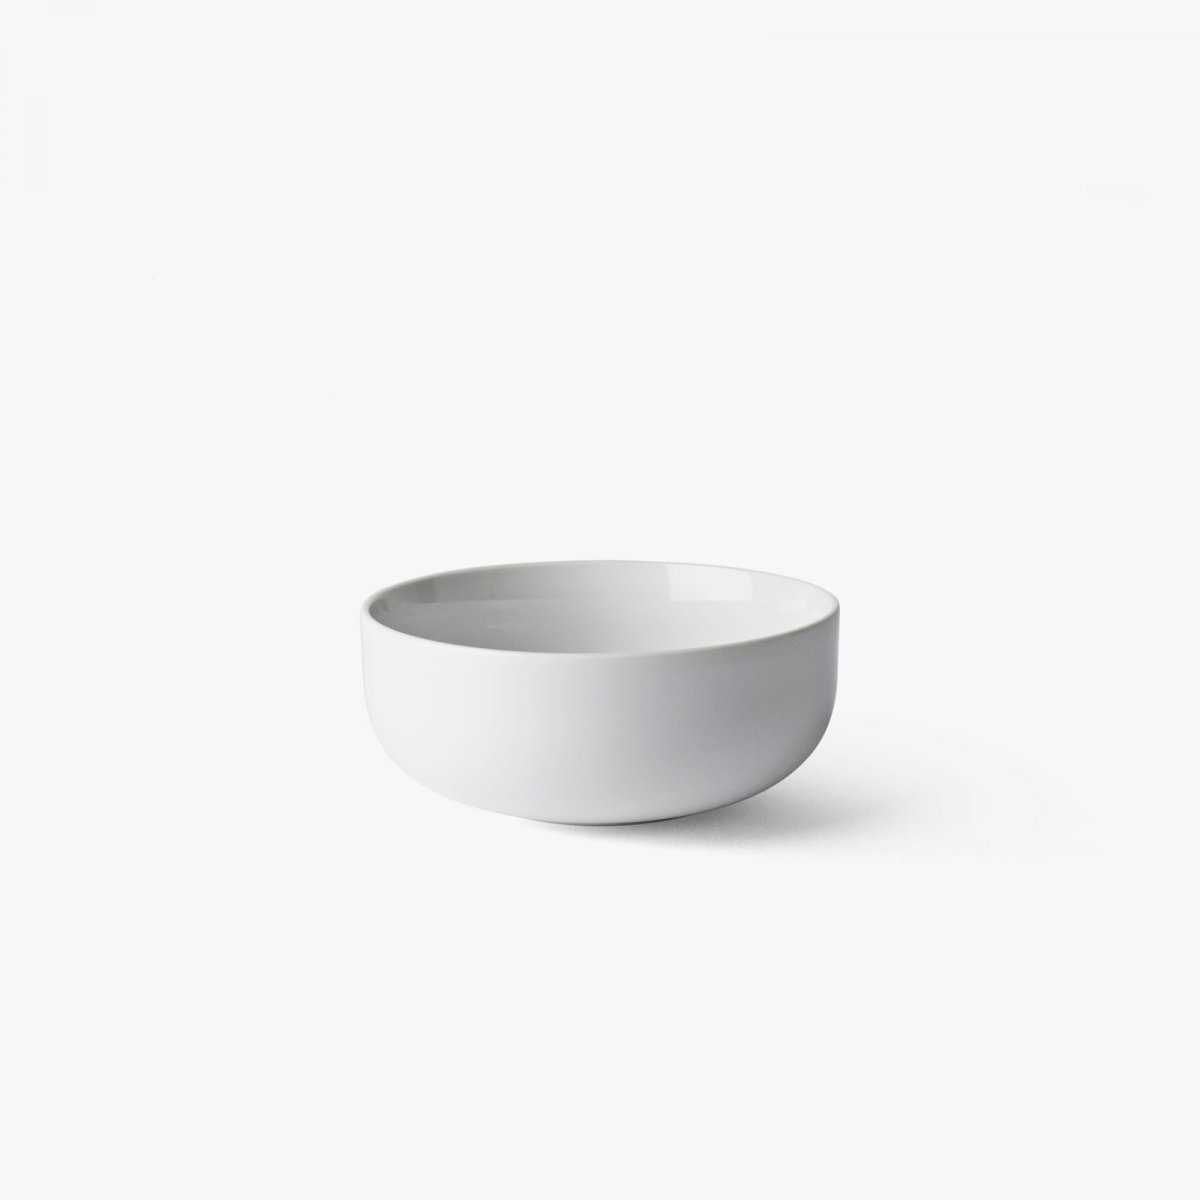 New Norm Bowl, Ø 13.5 cm, white.